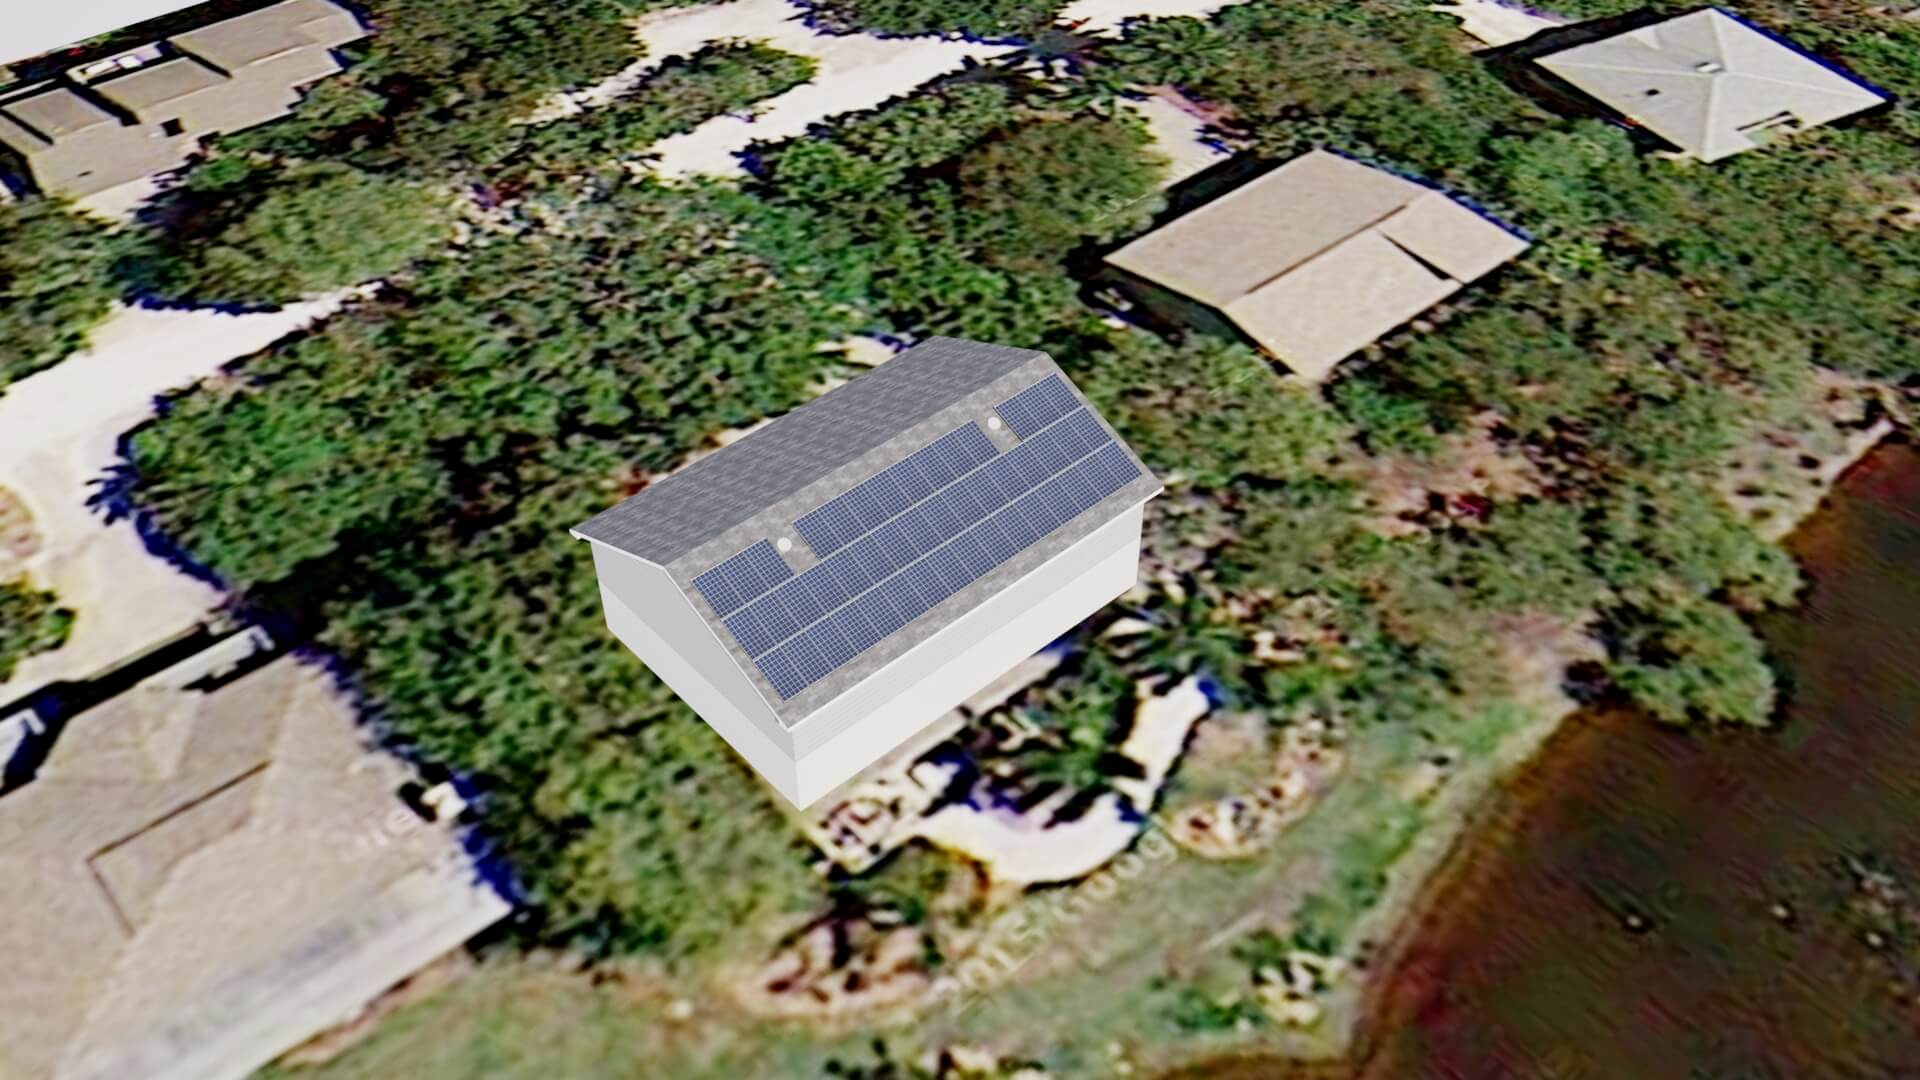 Sanibel Island Solar Electric System Design on Small Gable Roof